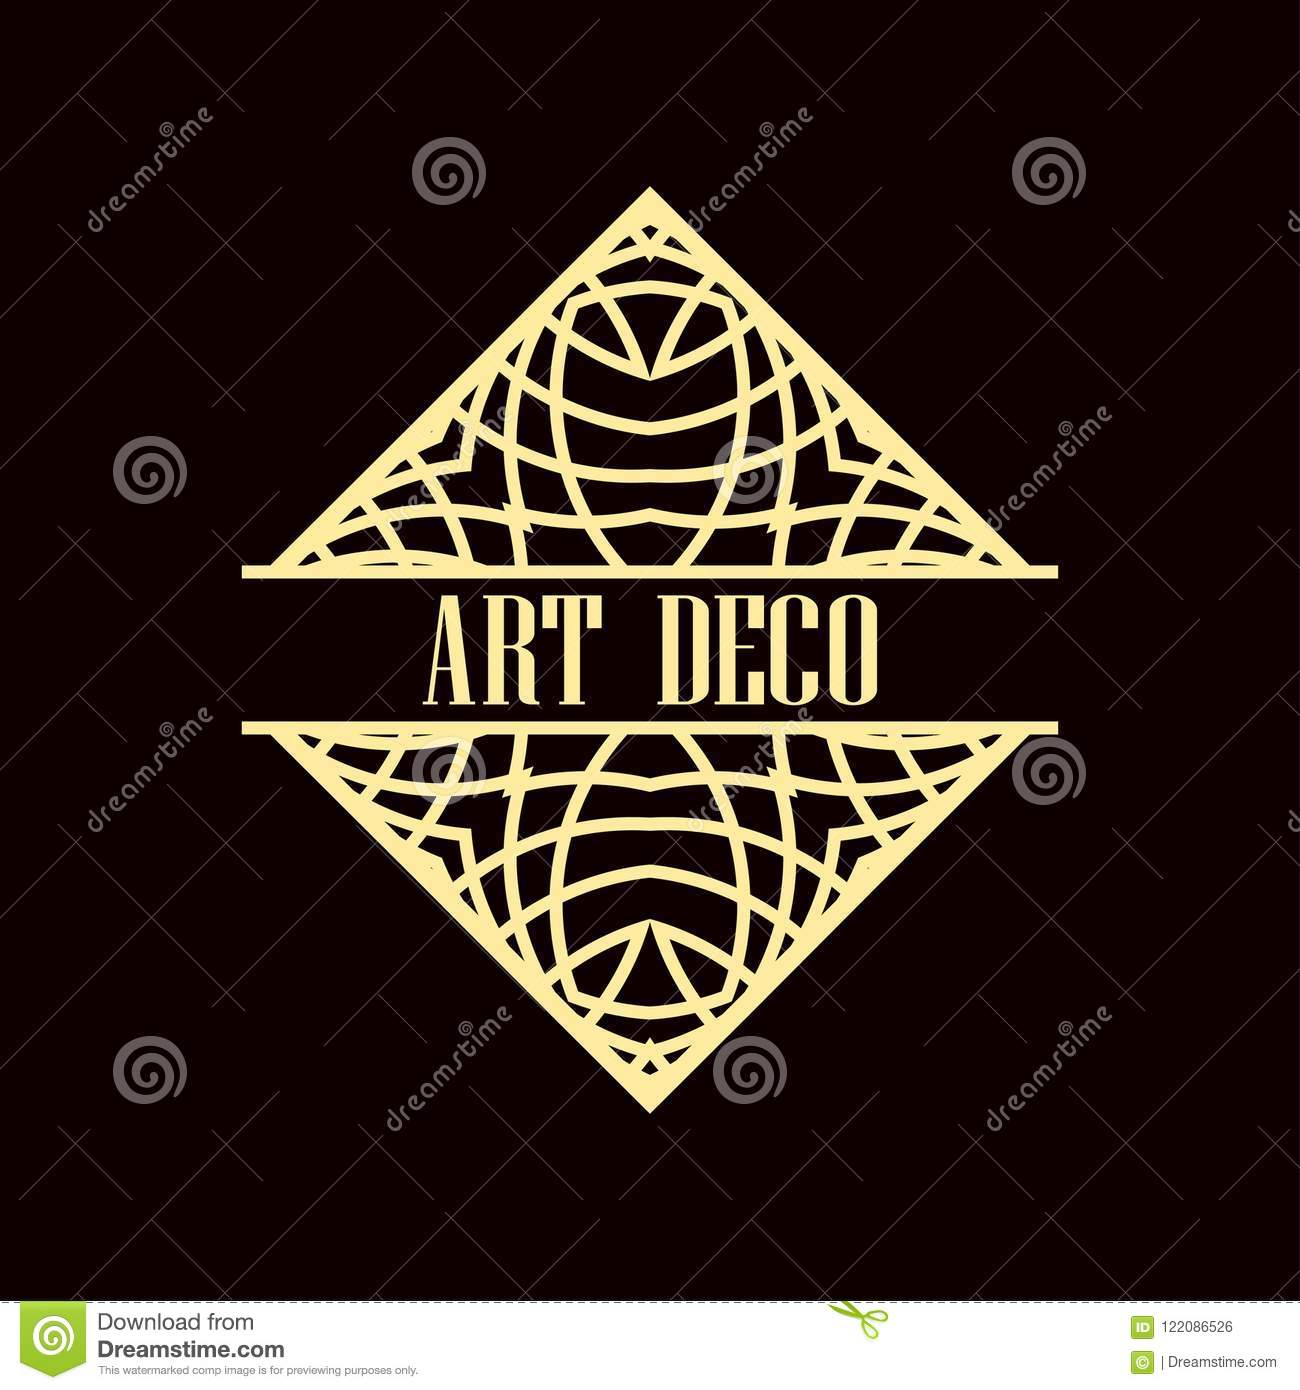 art deco logo stock vector illustration of gatsby emblem 122086526